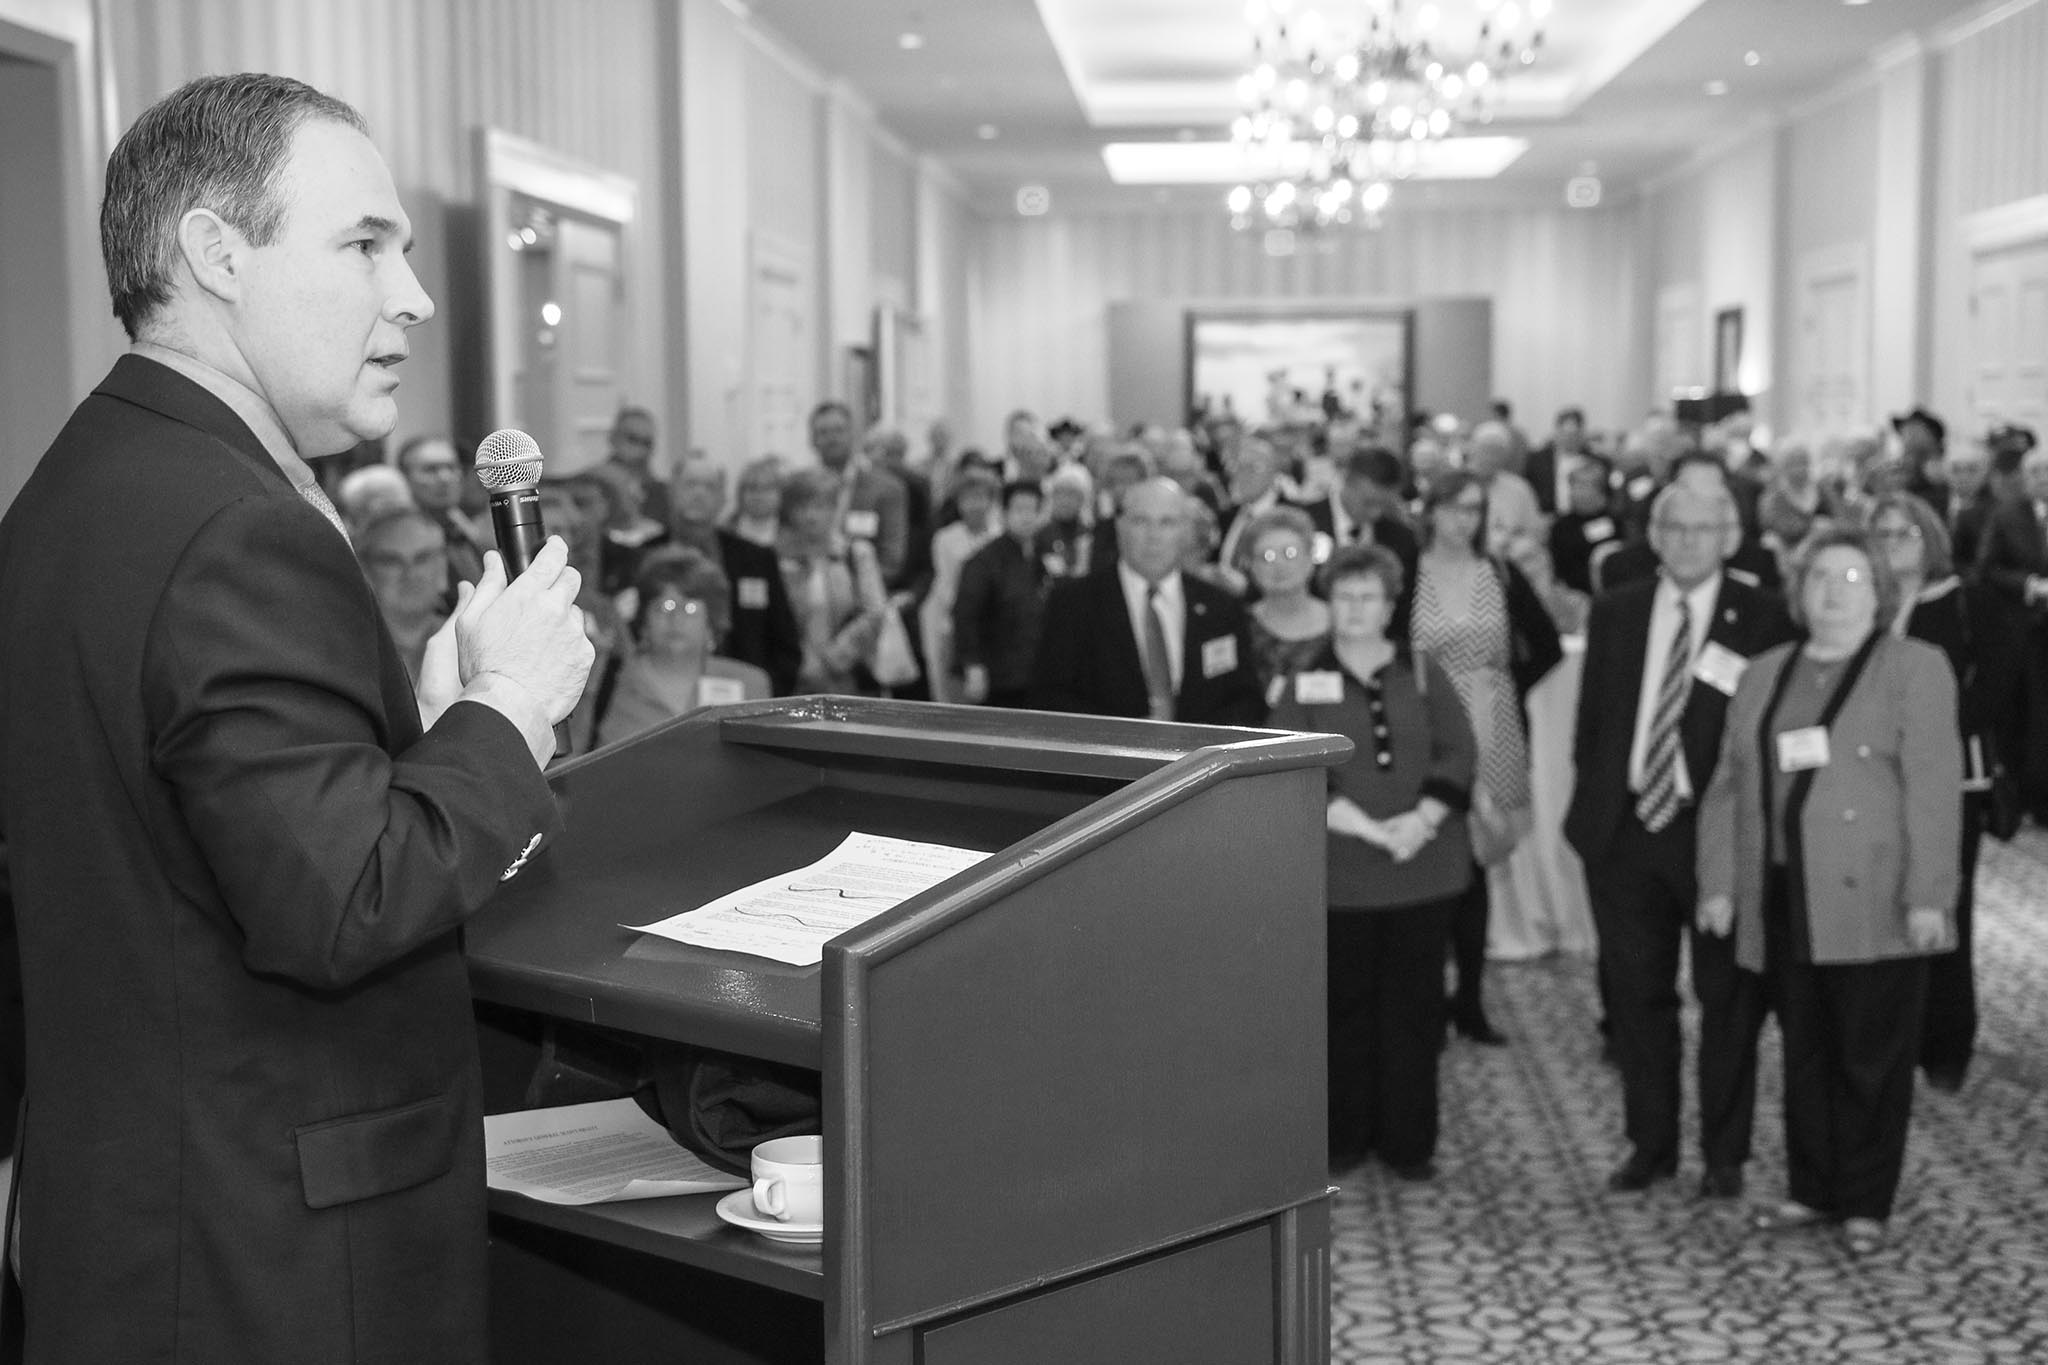 Oklahoma Attorney General Scott Pruitt speaks to a crowd of Oklahoma Farm Bureau members at the 2014 OKFB Legislative Leadership Conference at the Skirvin Hotel in Oklahoma City. Pruitt's address was a highlight of the two-day conference, which provided OKFB members a chance to personally connect with legislators, public officials and agricultural experts as they discussed emerging agricultural and policy issues.